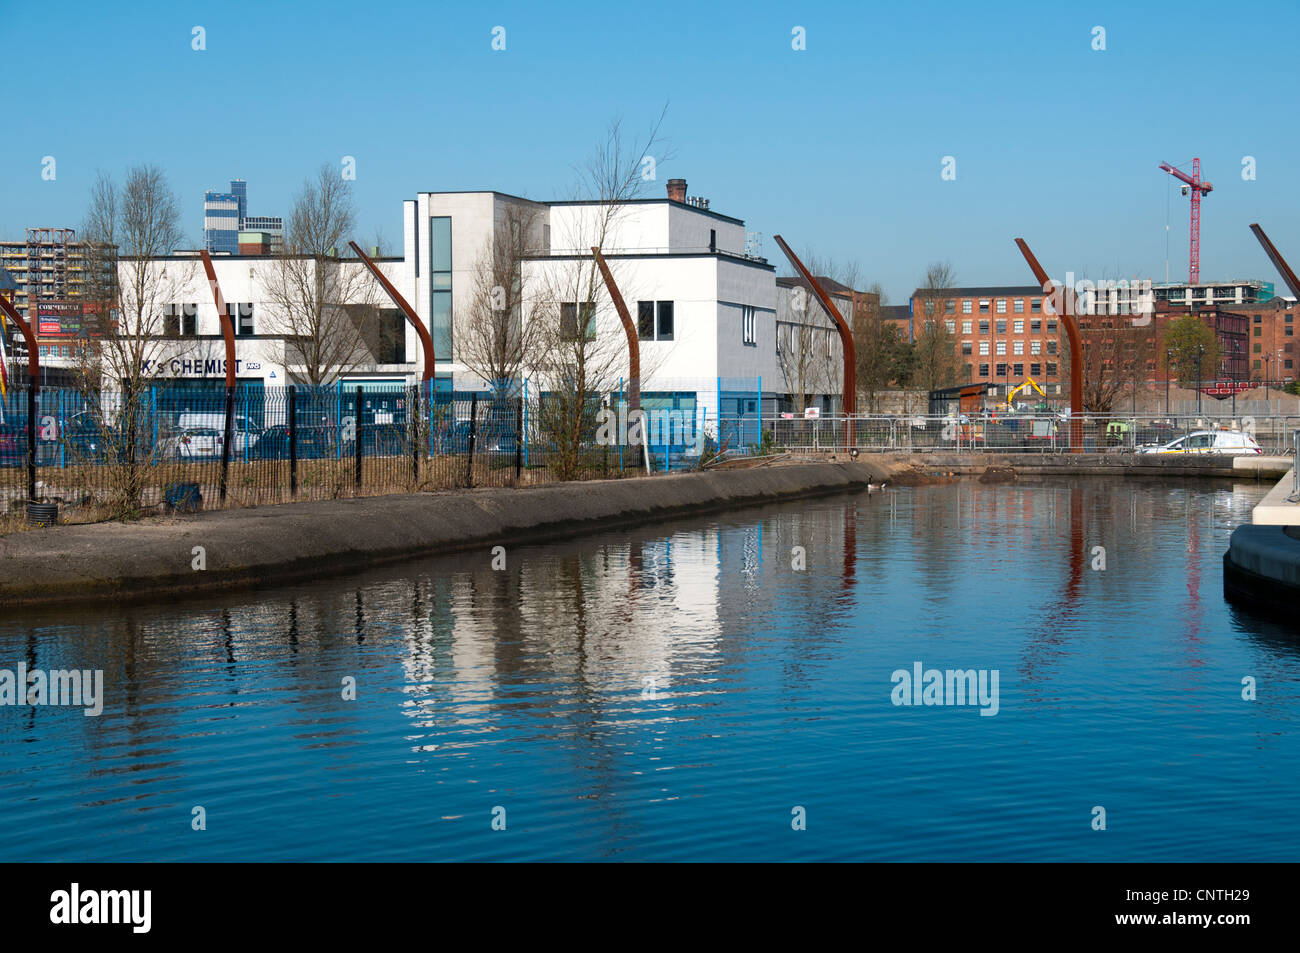 Ancoats Primary Care Centre and the canal arm on Old Mill Street, New Islington, Manchester, England, UK - Stock Image